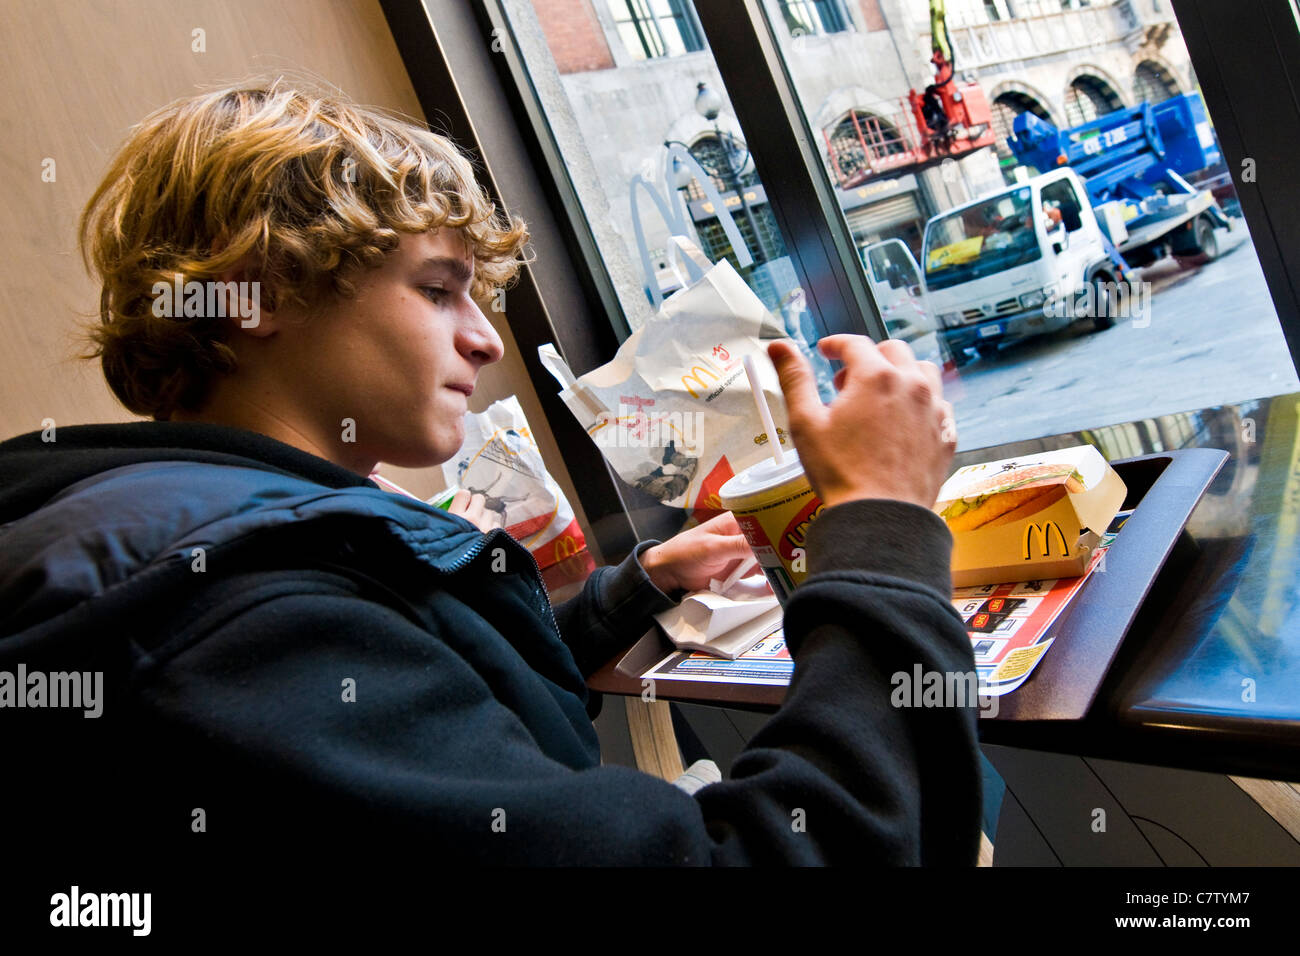 Teenage boy eating at fast food - Stock Image